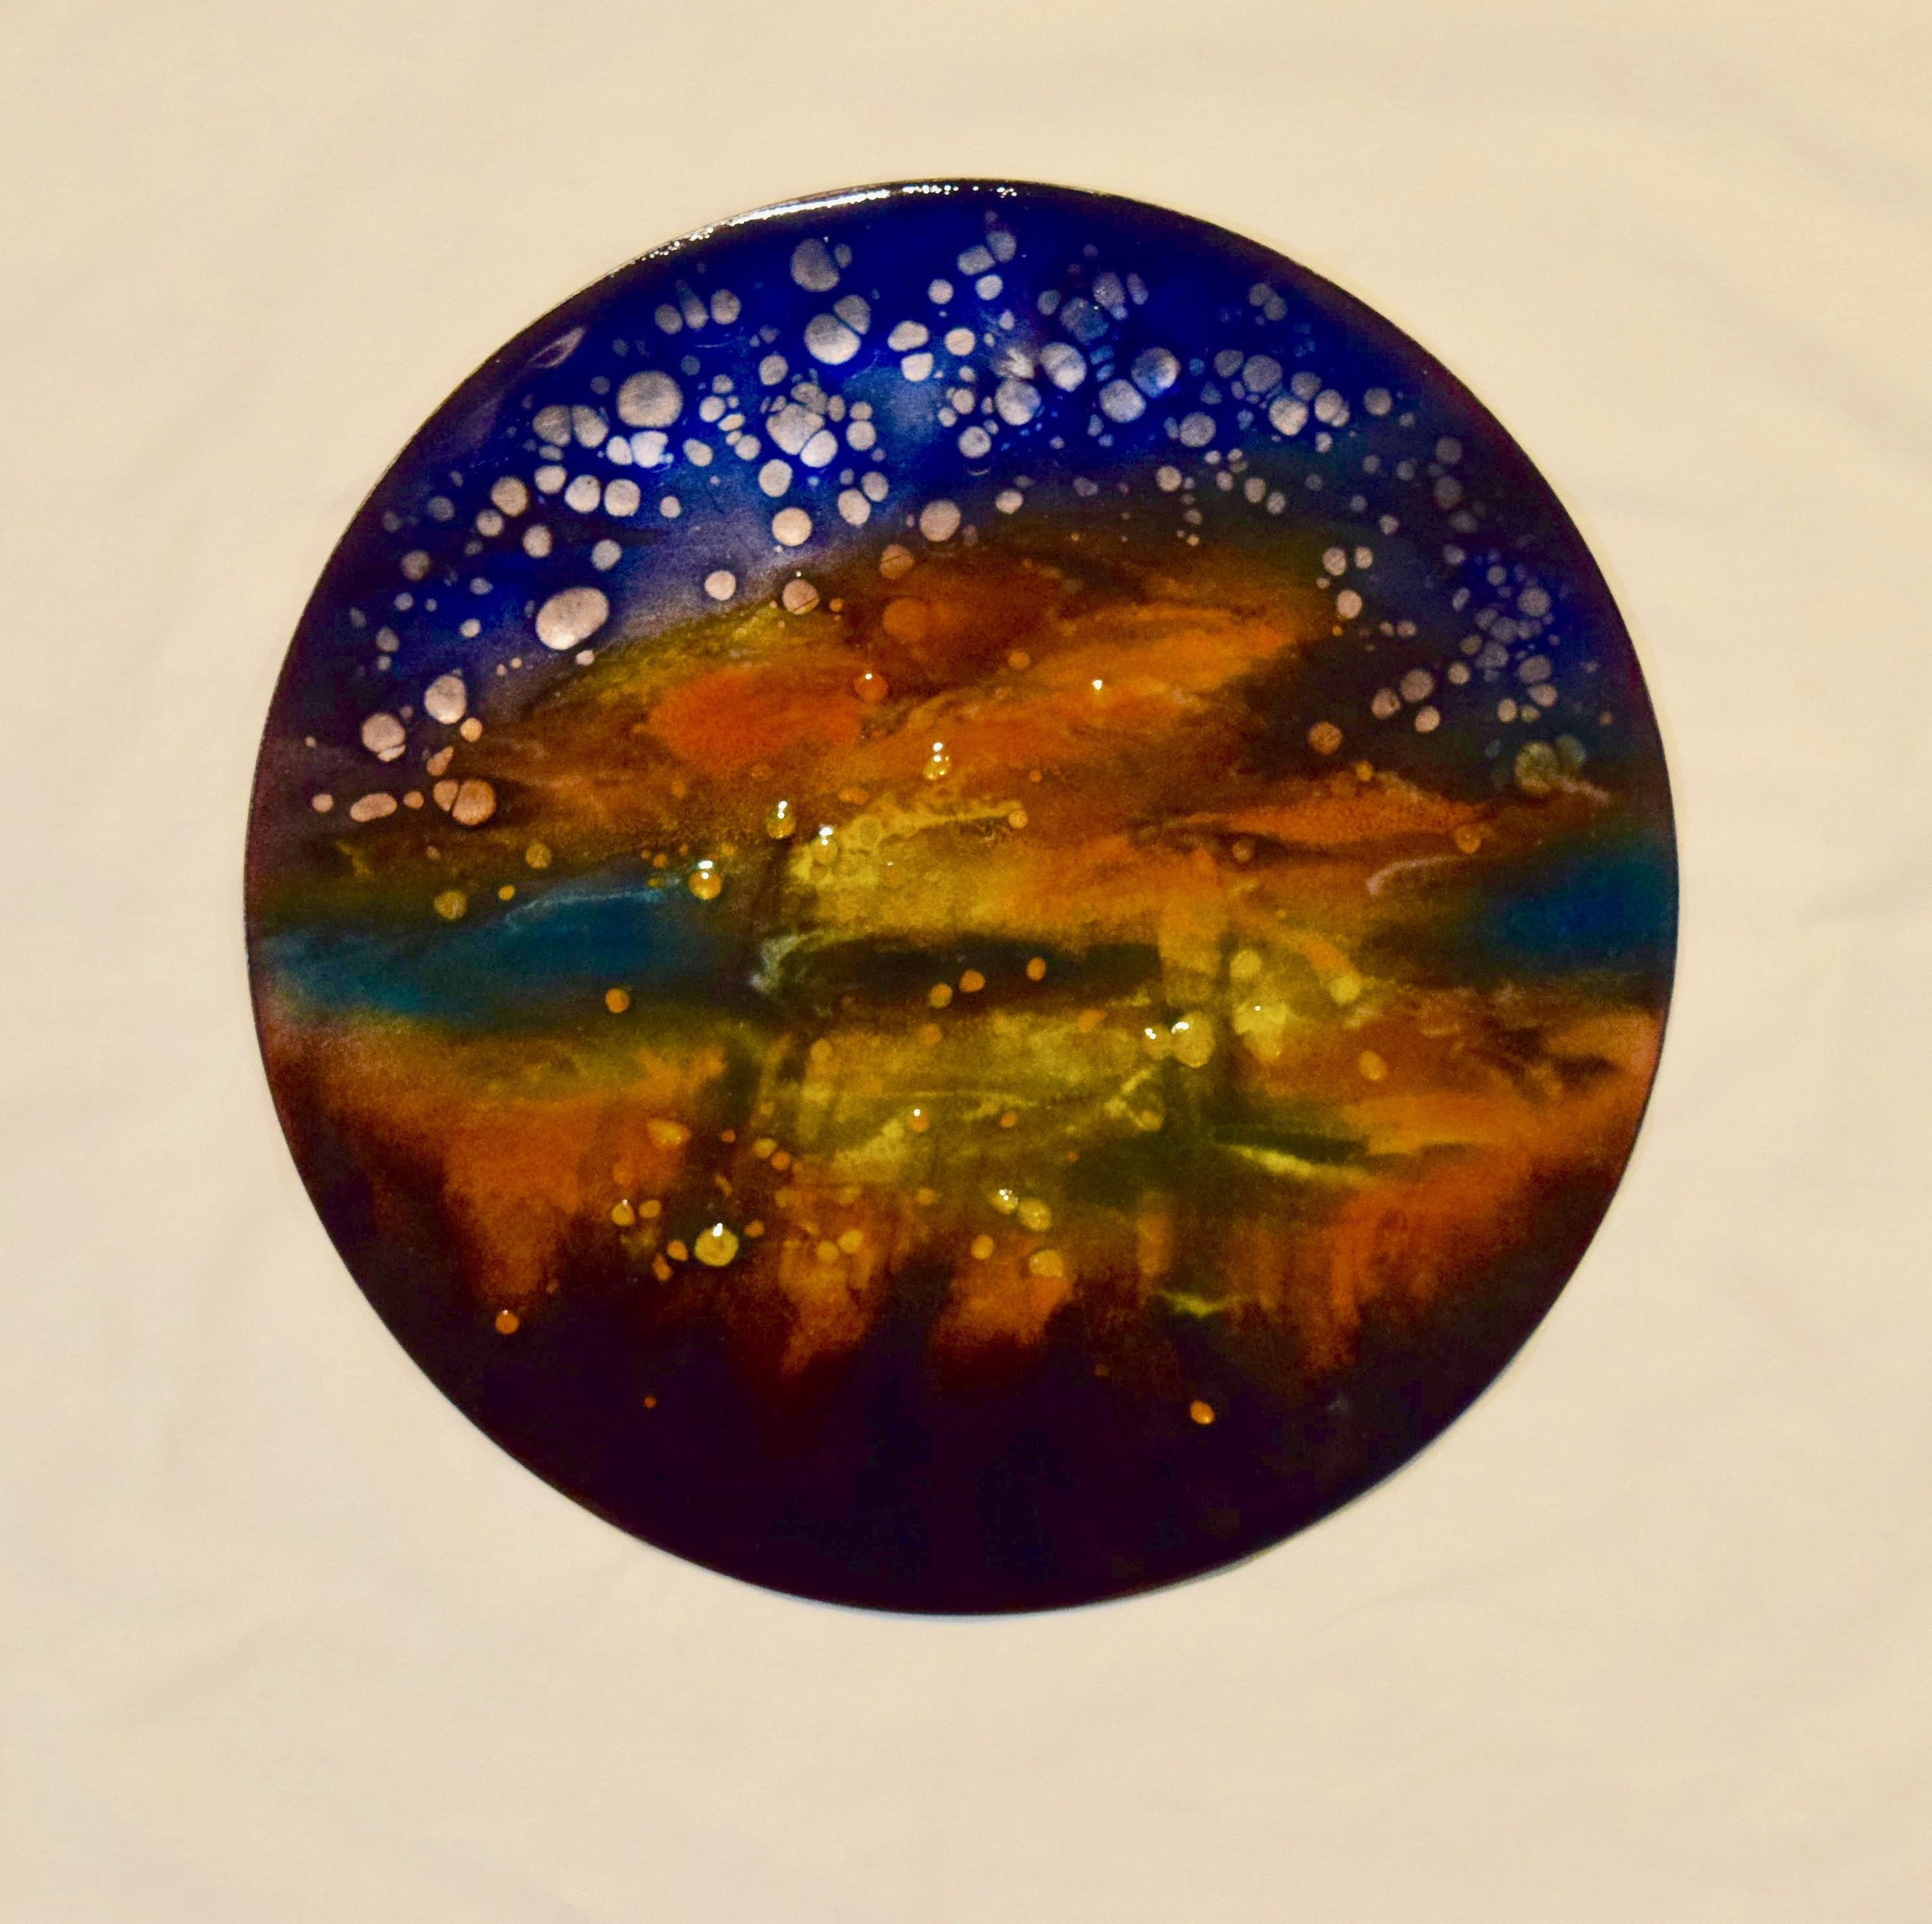 Mysterious Sunset Disc By Cynthia Miller Art Glass Wall